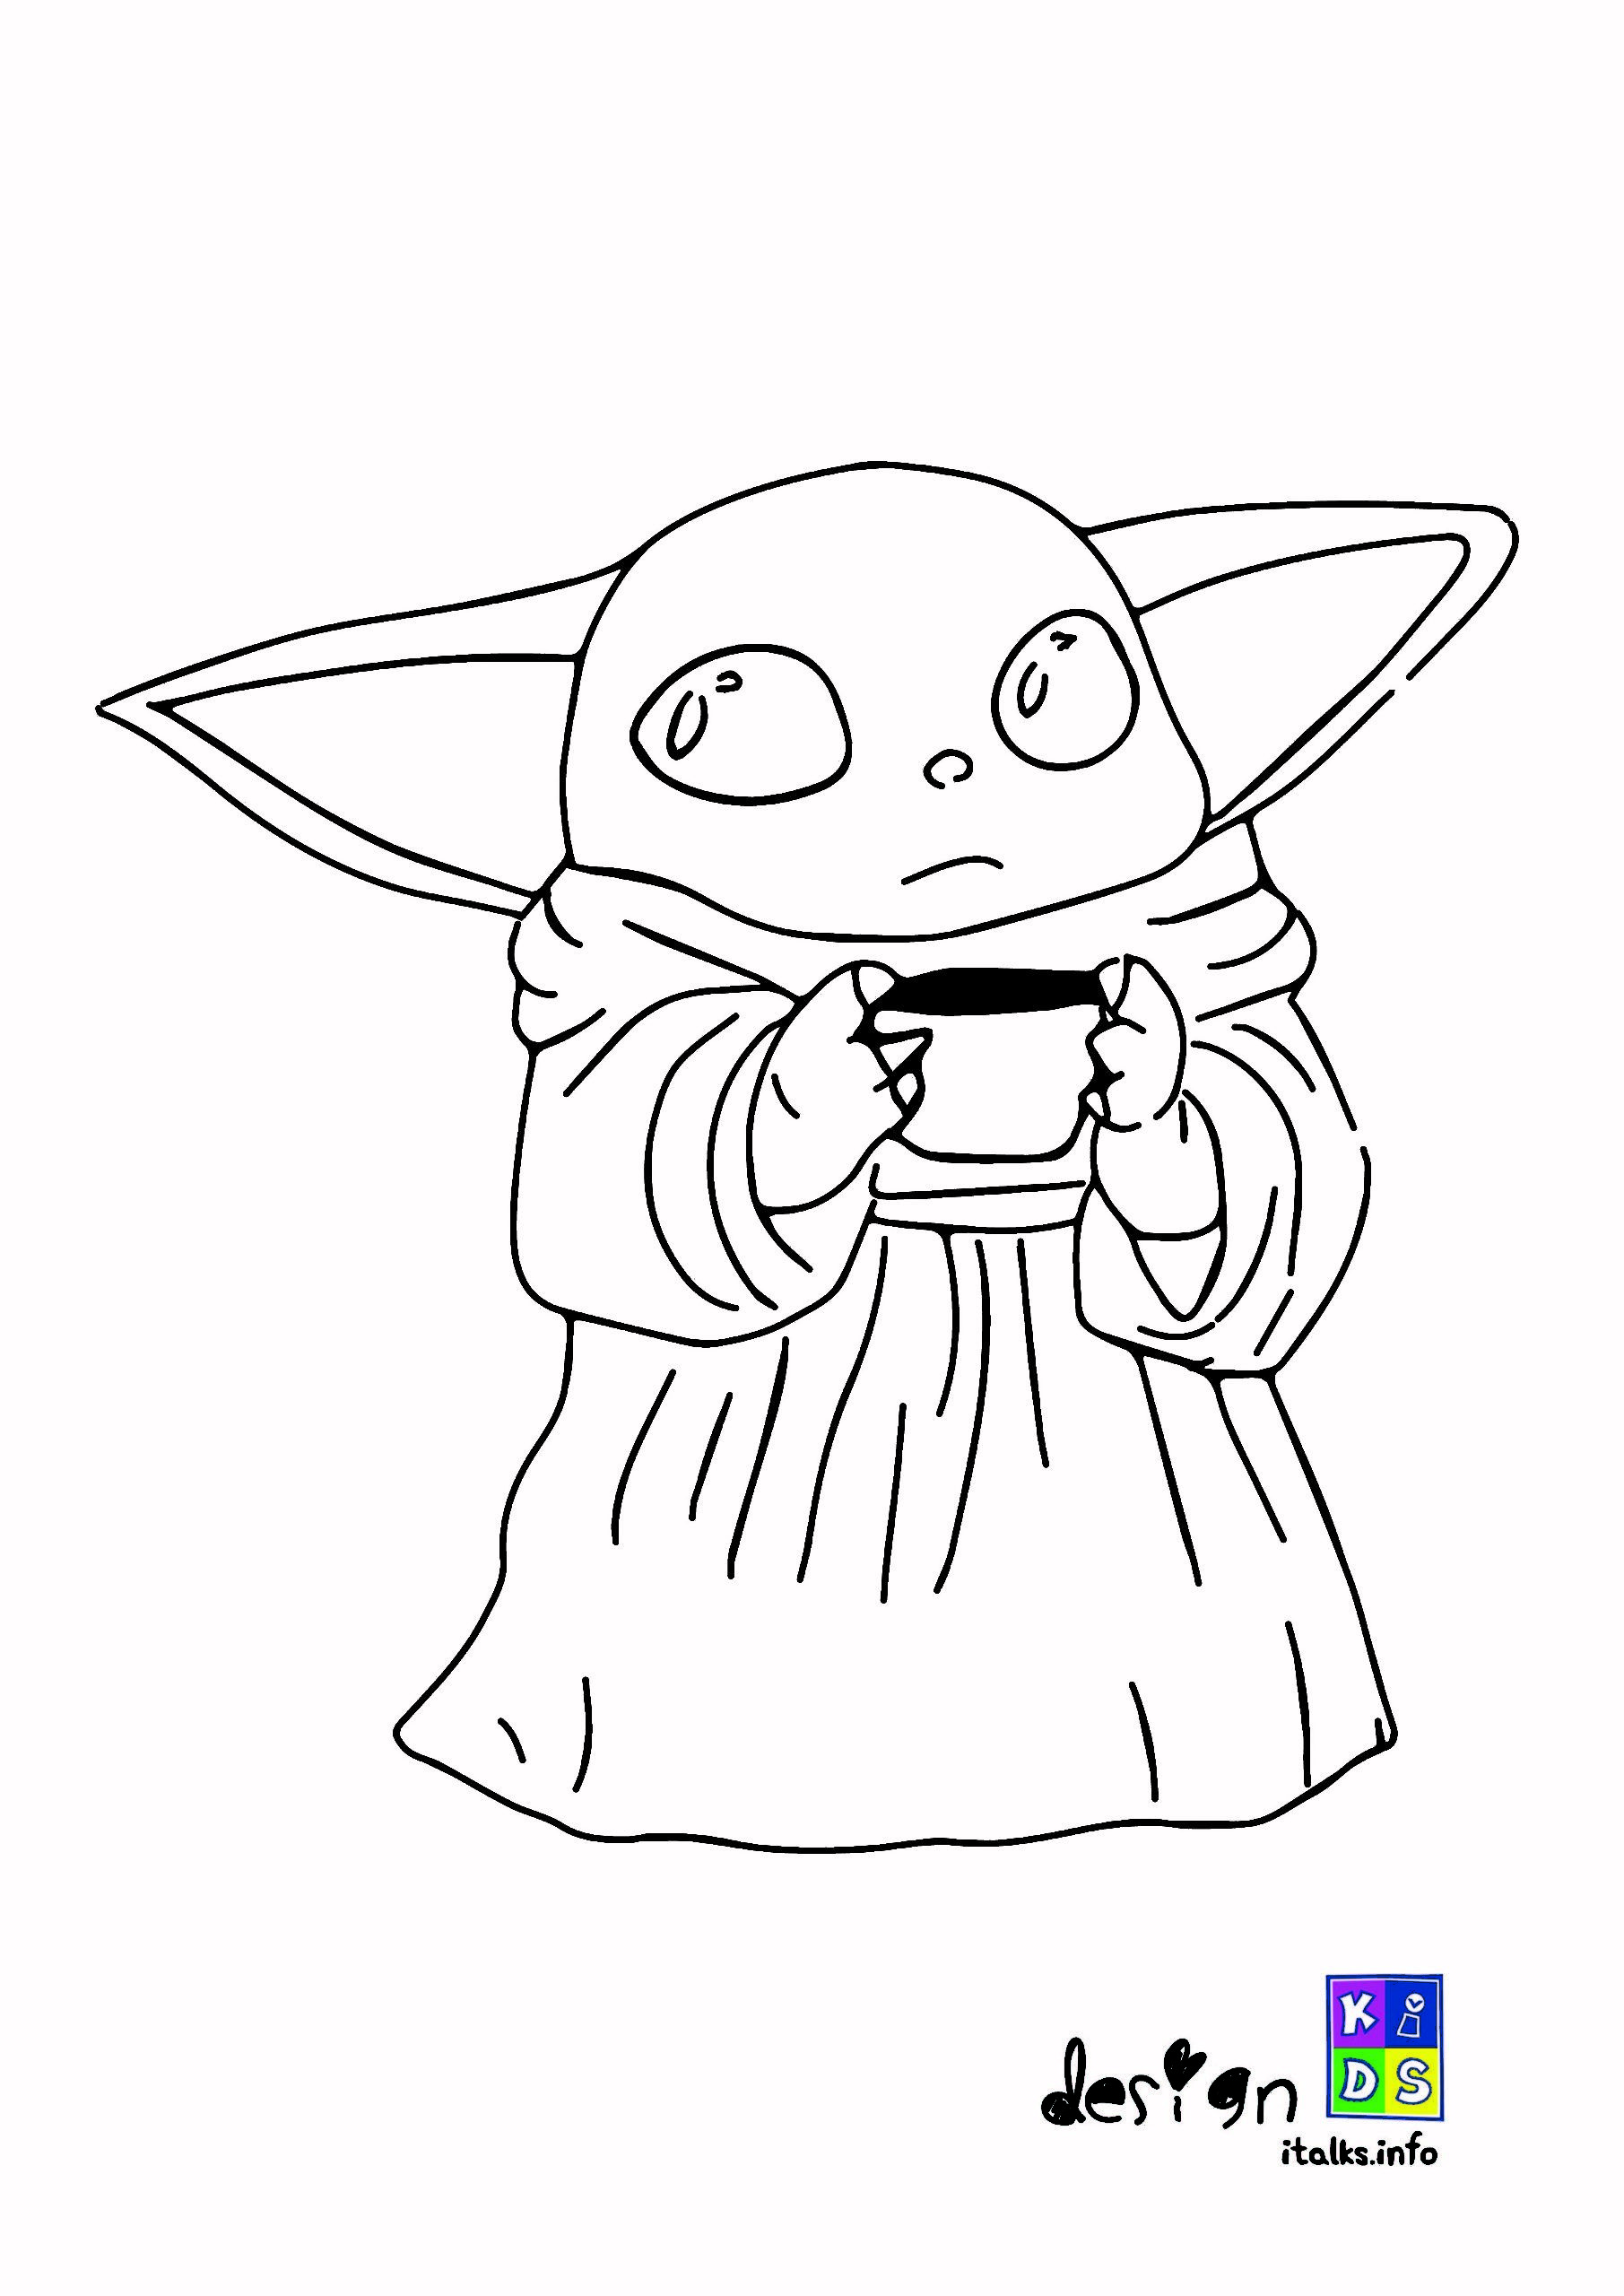 Baby Yoda Coloring Page Designkids Only For Kids Di